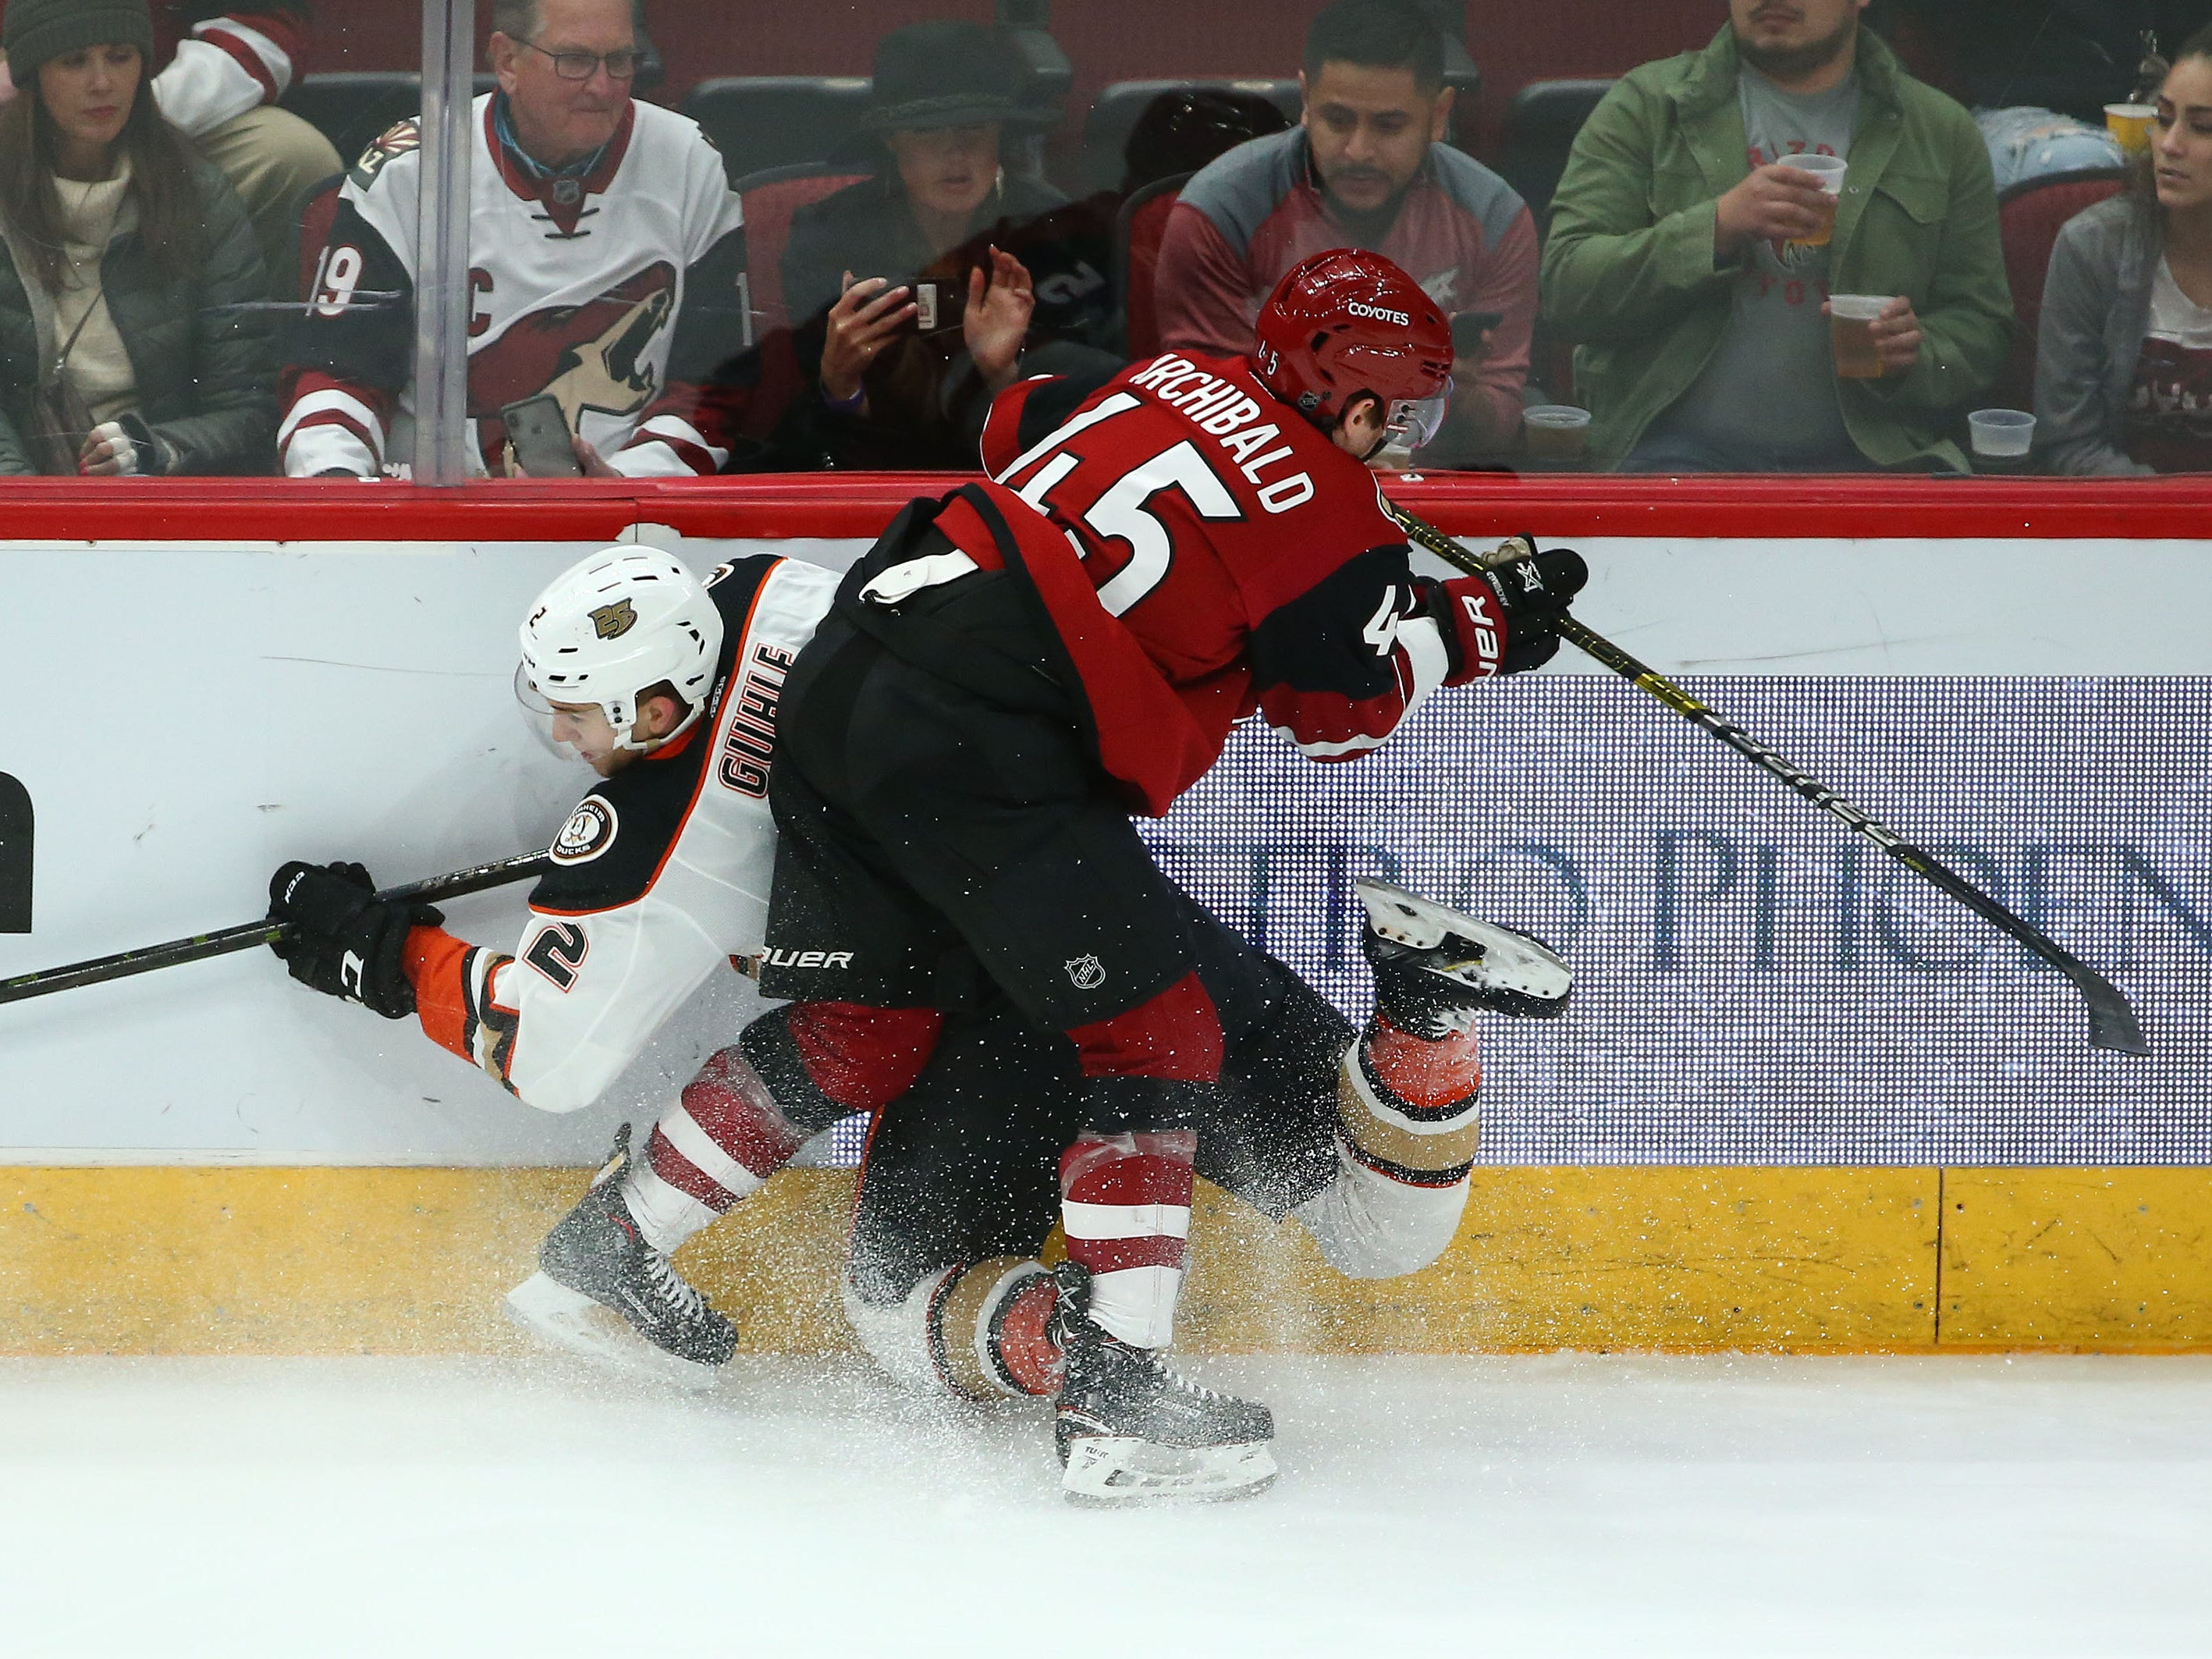 Anaheim Ducks defenseman Brendan Guhle (2) is checked into the board by Arizona Coyotes right wing Josh Archibald (45) in the first period on Mar. 5, 2019, at Gila River Arena in Glendale, Ariz.